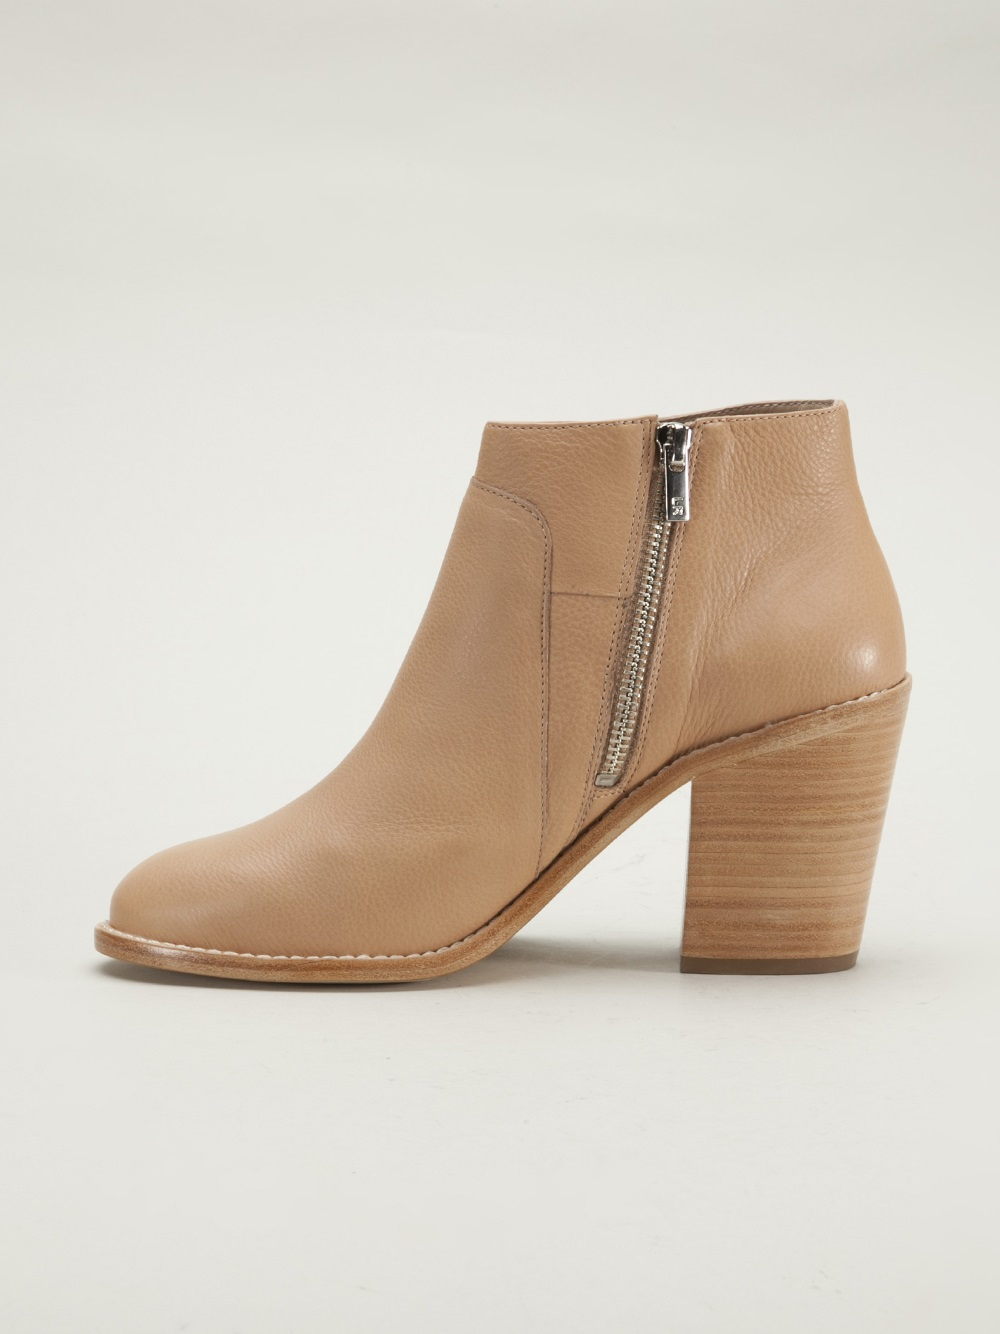 discount 100% authentic Loeffler Randall Ella Suede Ankle Boots popular for sale yZUpsfgn